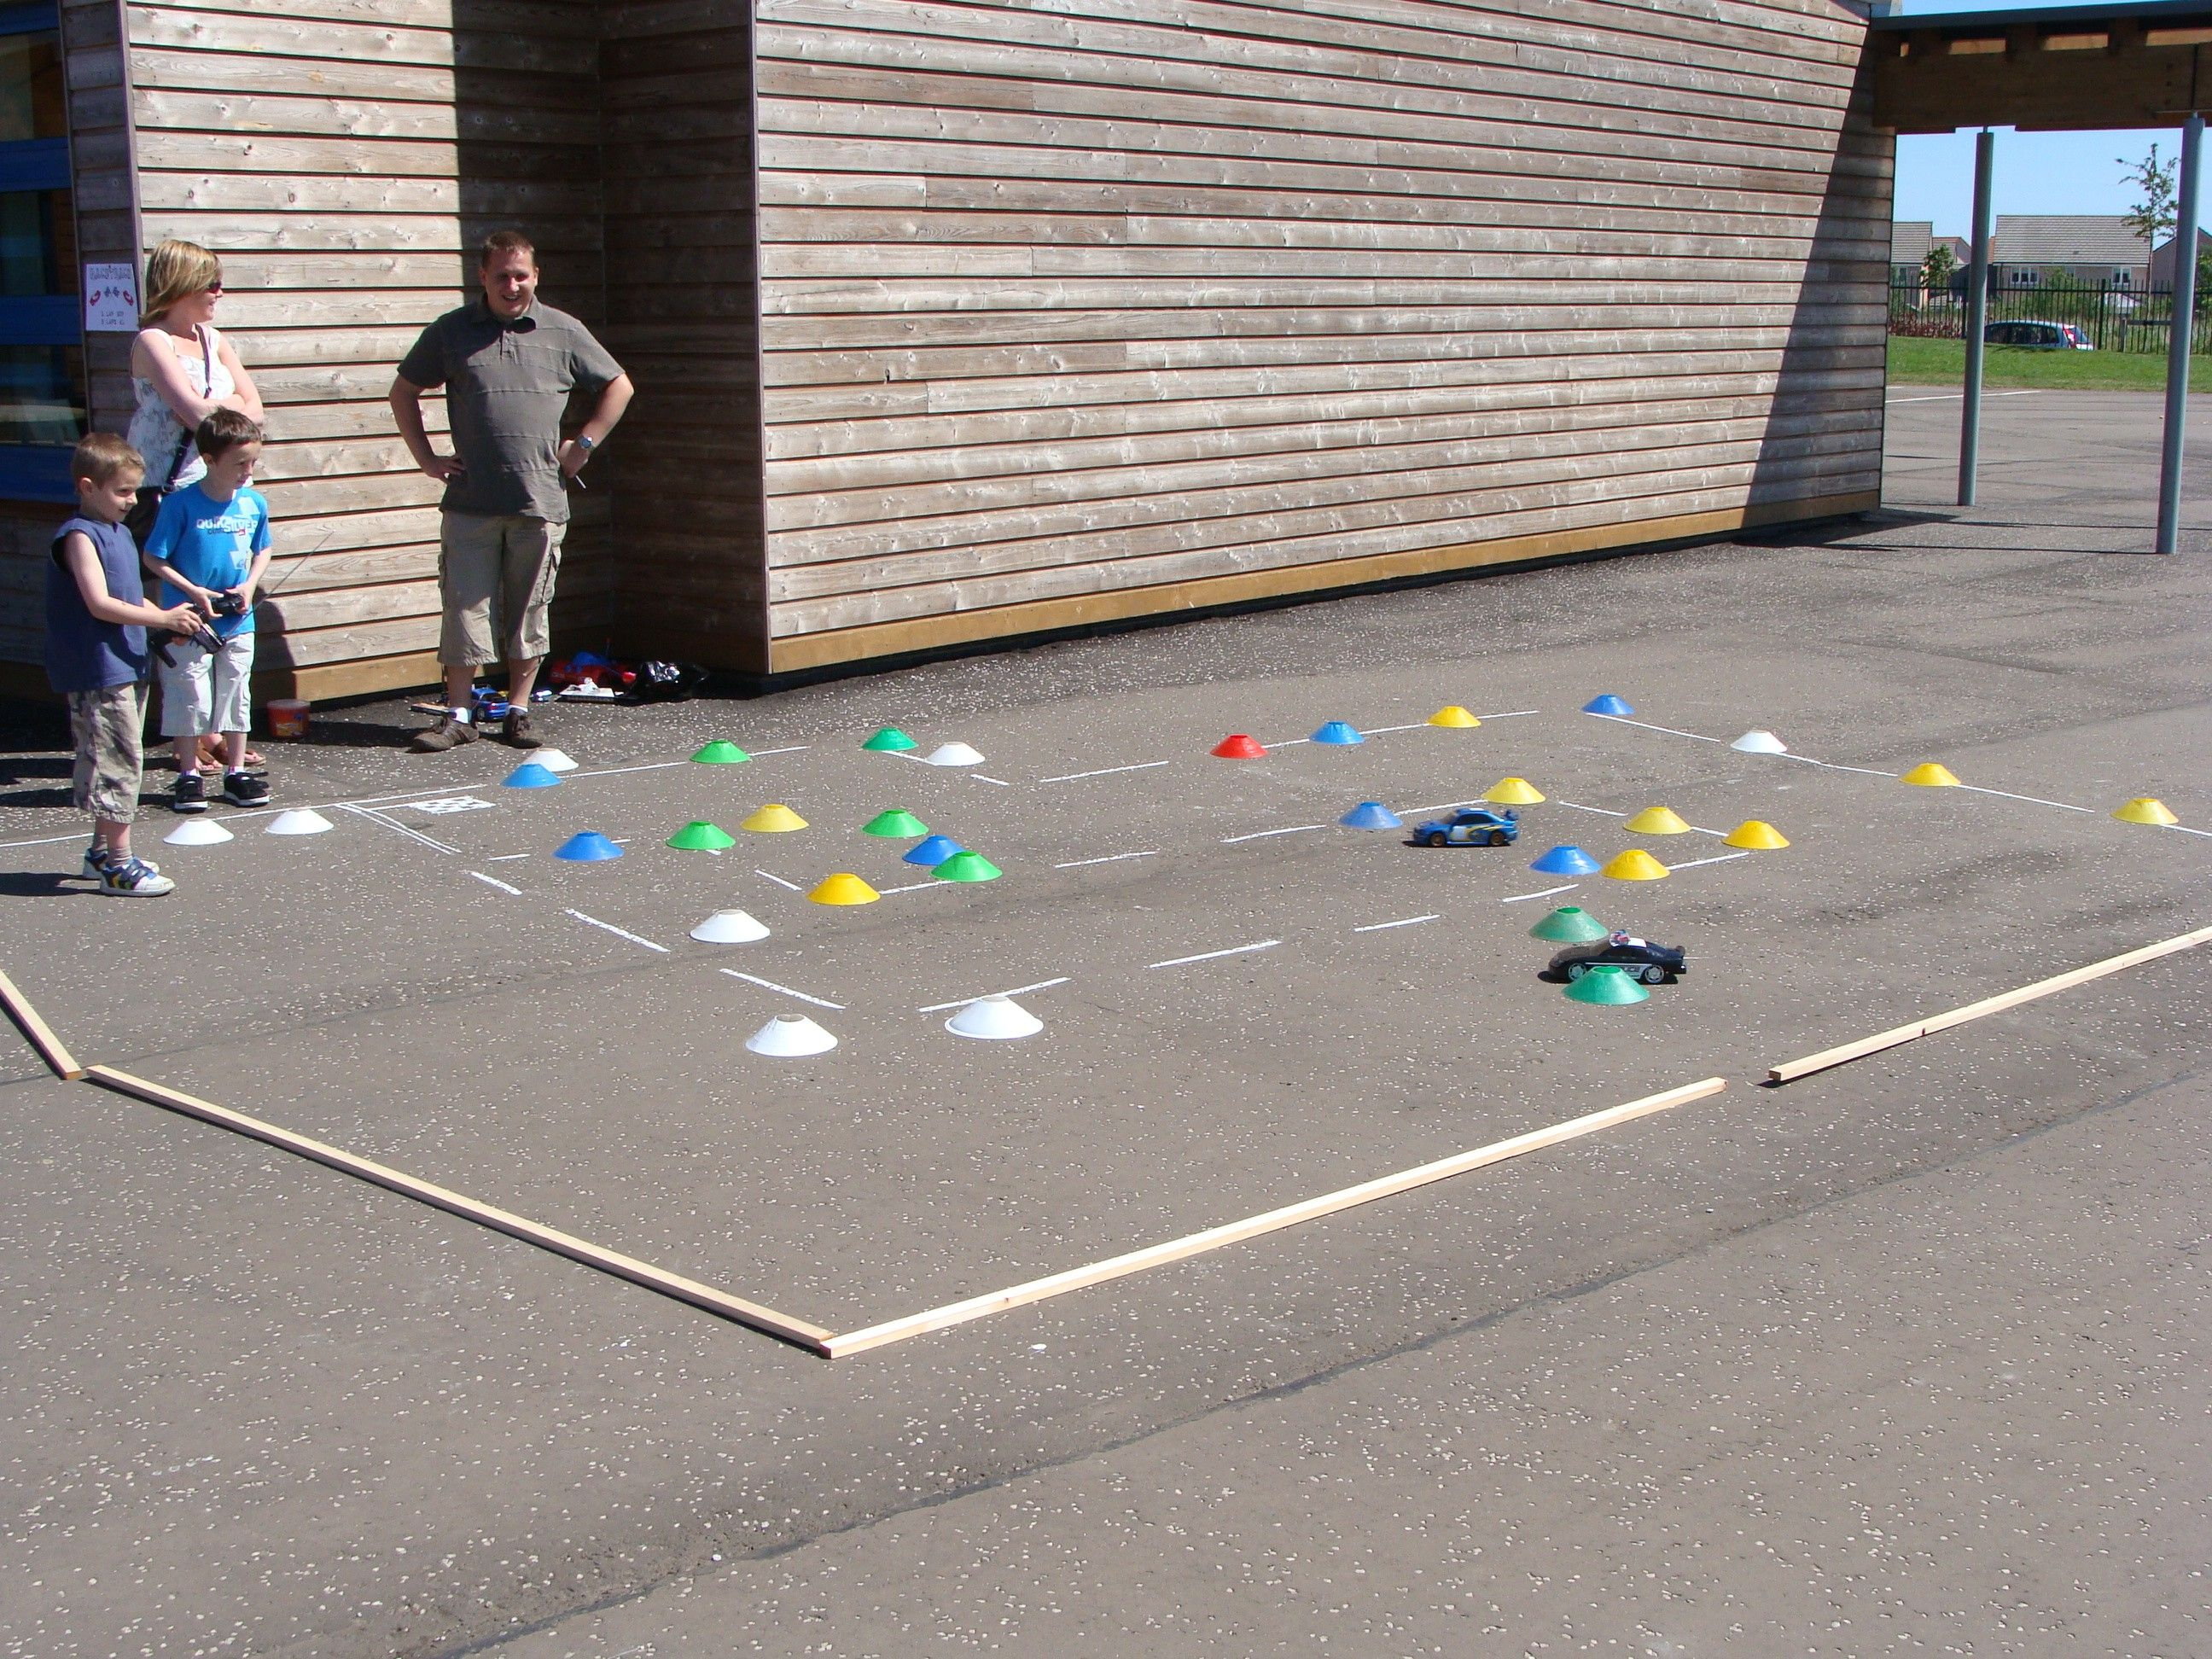 Remote control car obstacle course activity for a school carnival